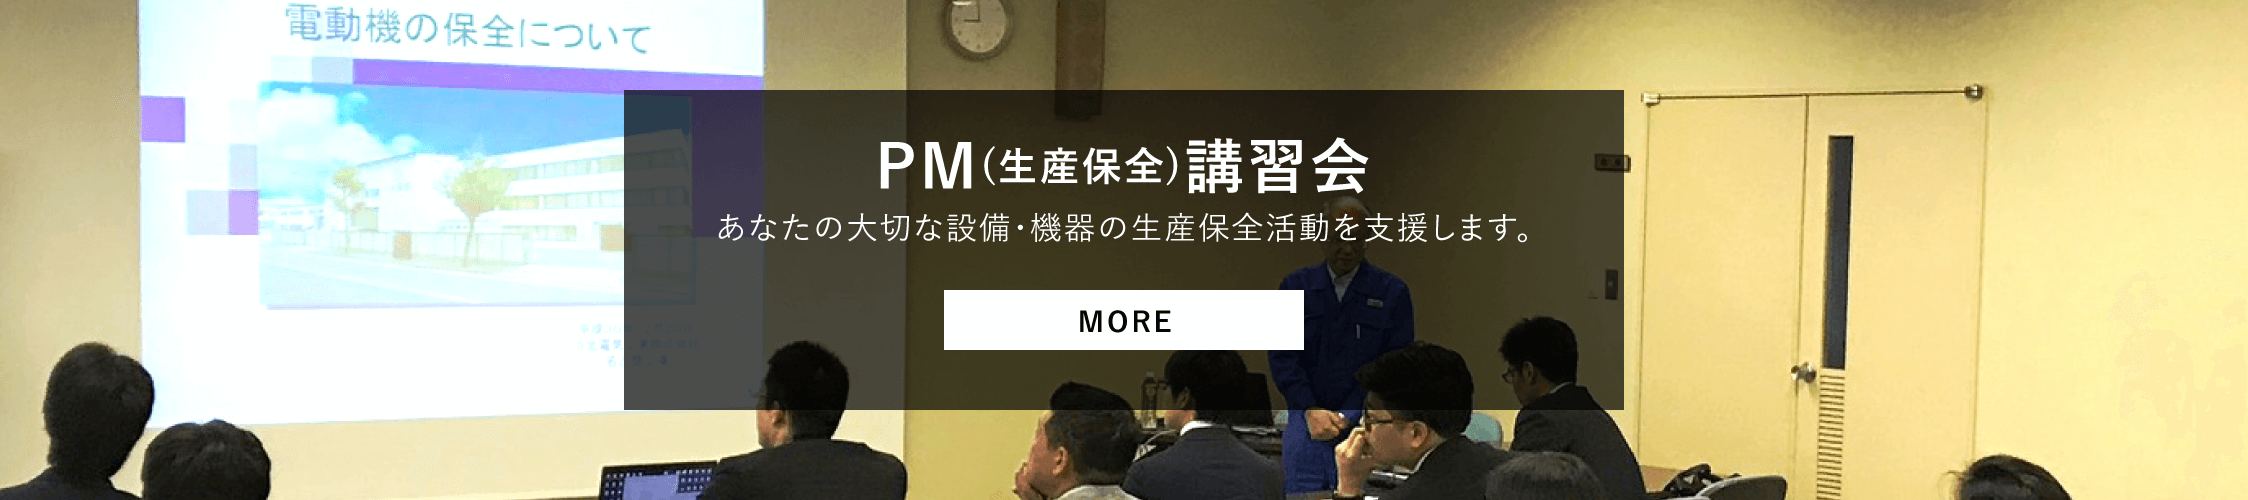 PM(生産保全)講習会 あなたの大切な設備・機器の生産保全活動を支援します。